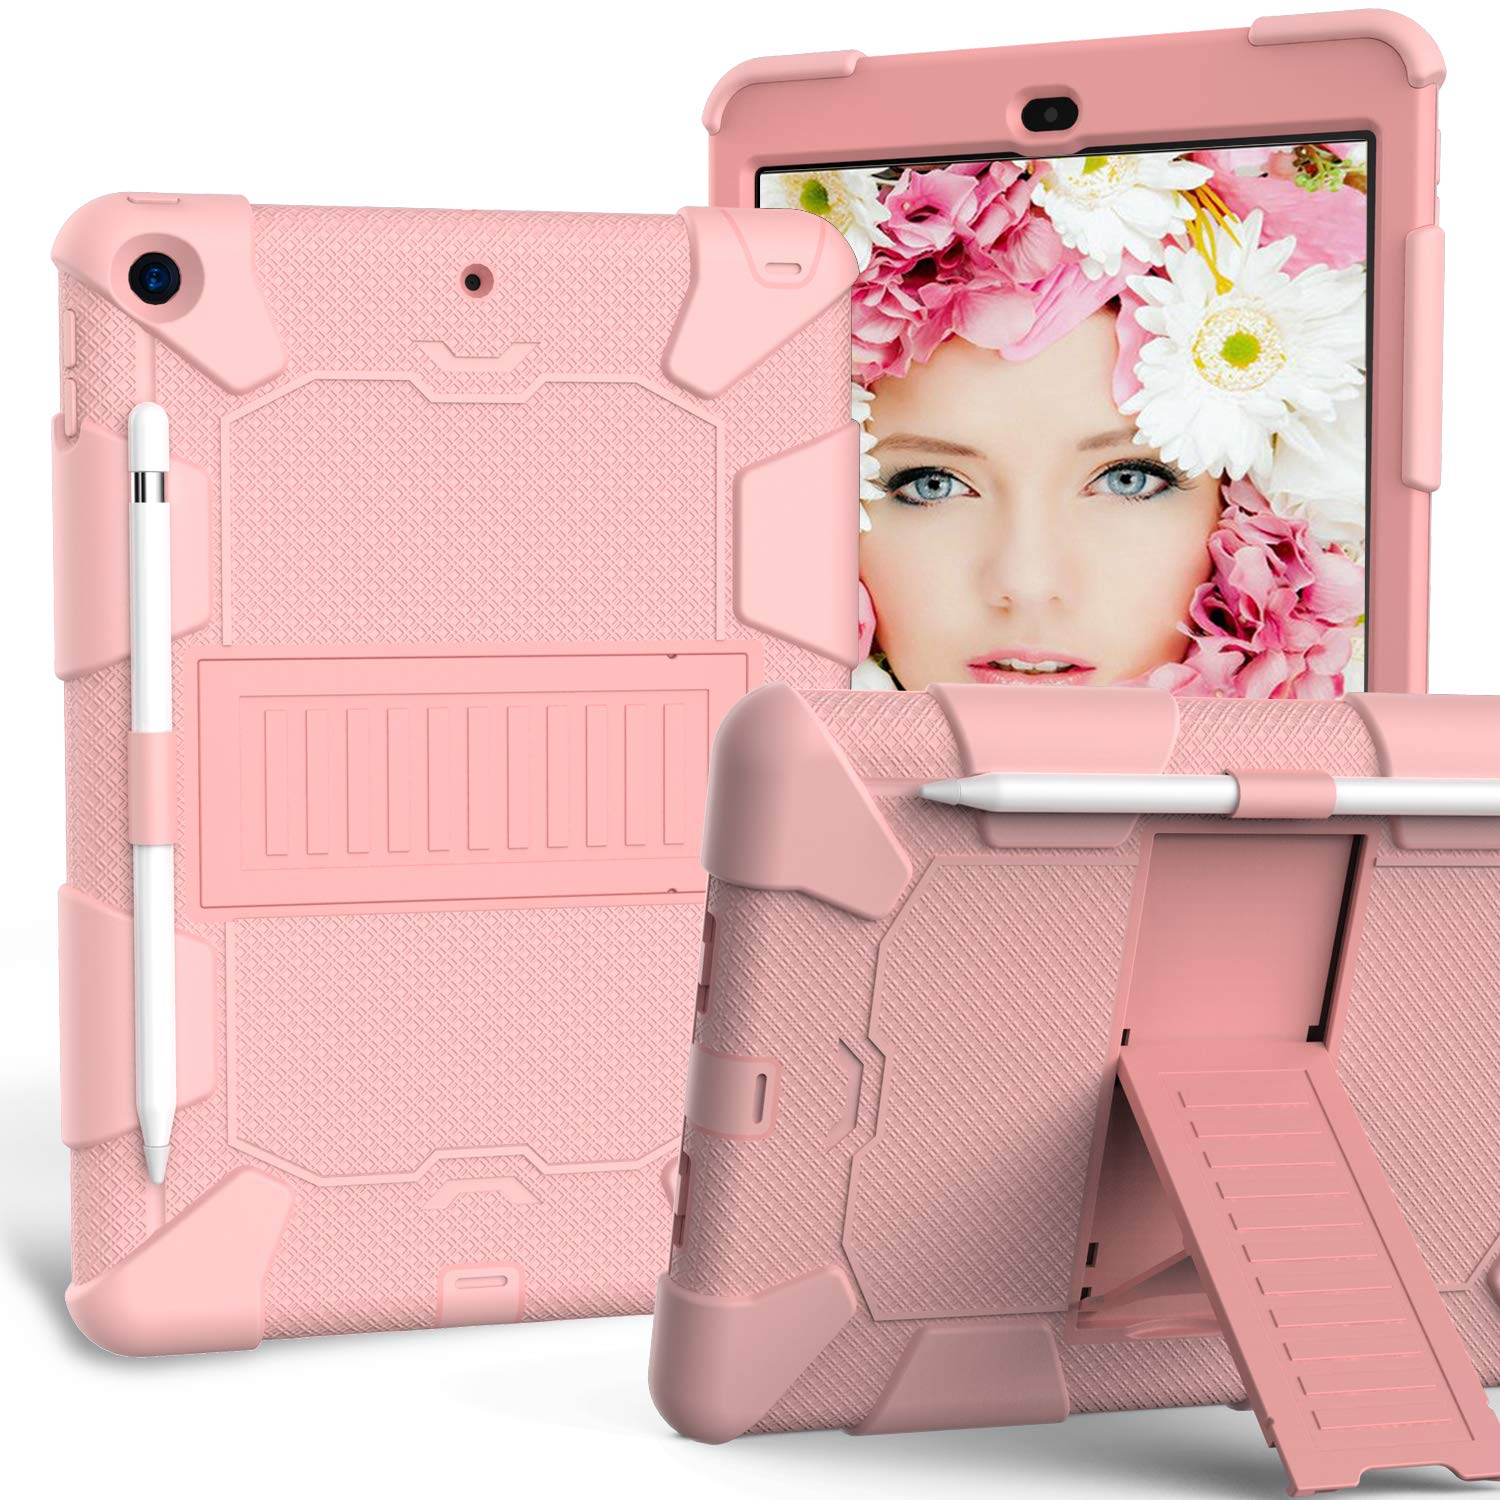 HLHGR iPad 7th Generation Cases,iPad 10.2 2019 Case Heavy Duty Hybrid PC + Silicone Drop Protection Rugged Case with Pencil Holder Built-in Kickstand foriPad 10.2 inch Rosegold